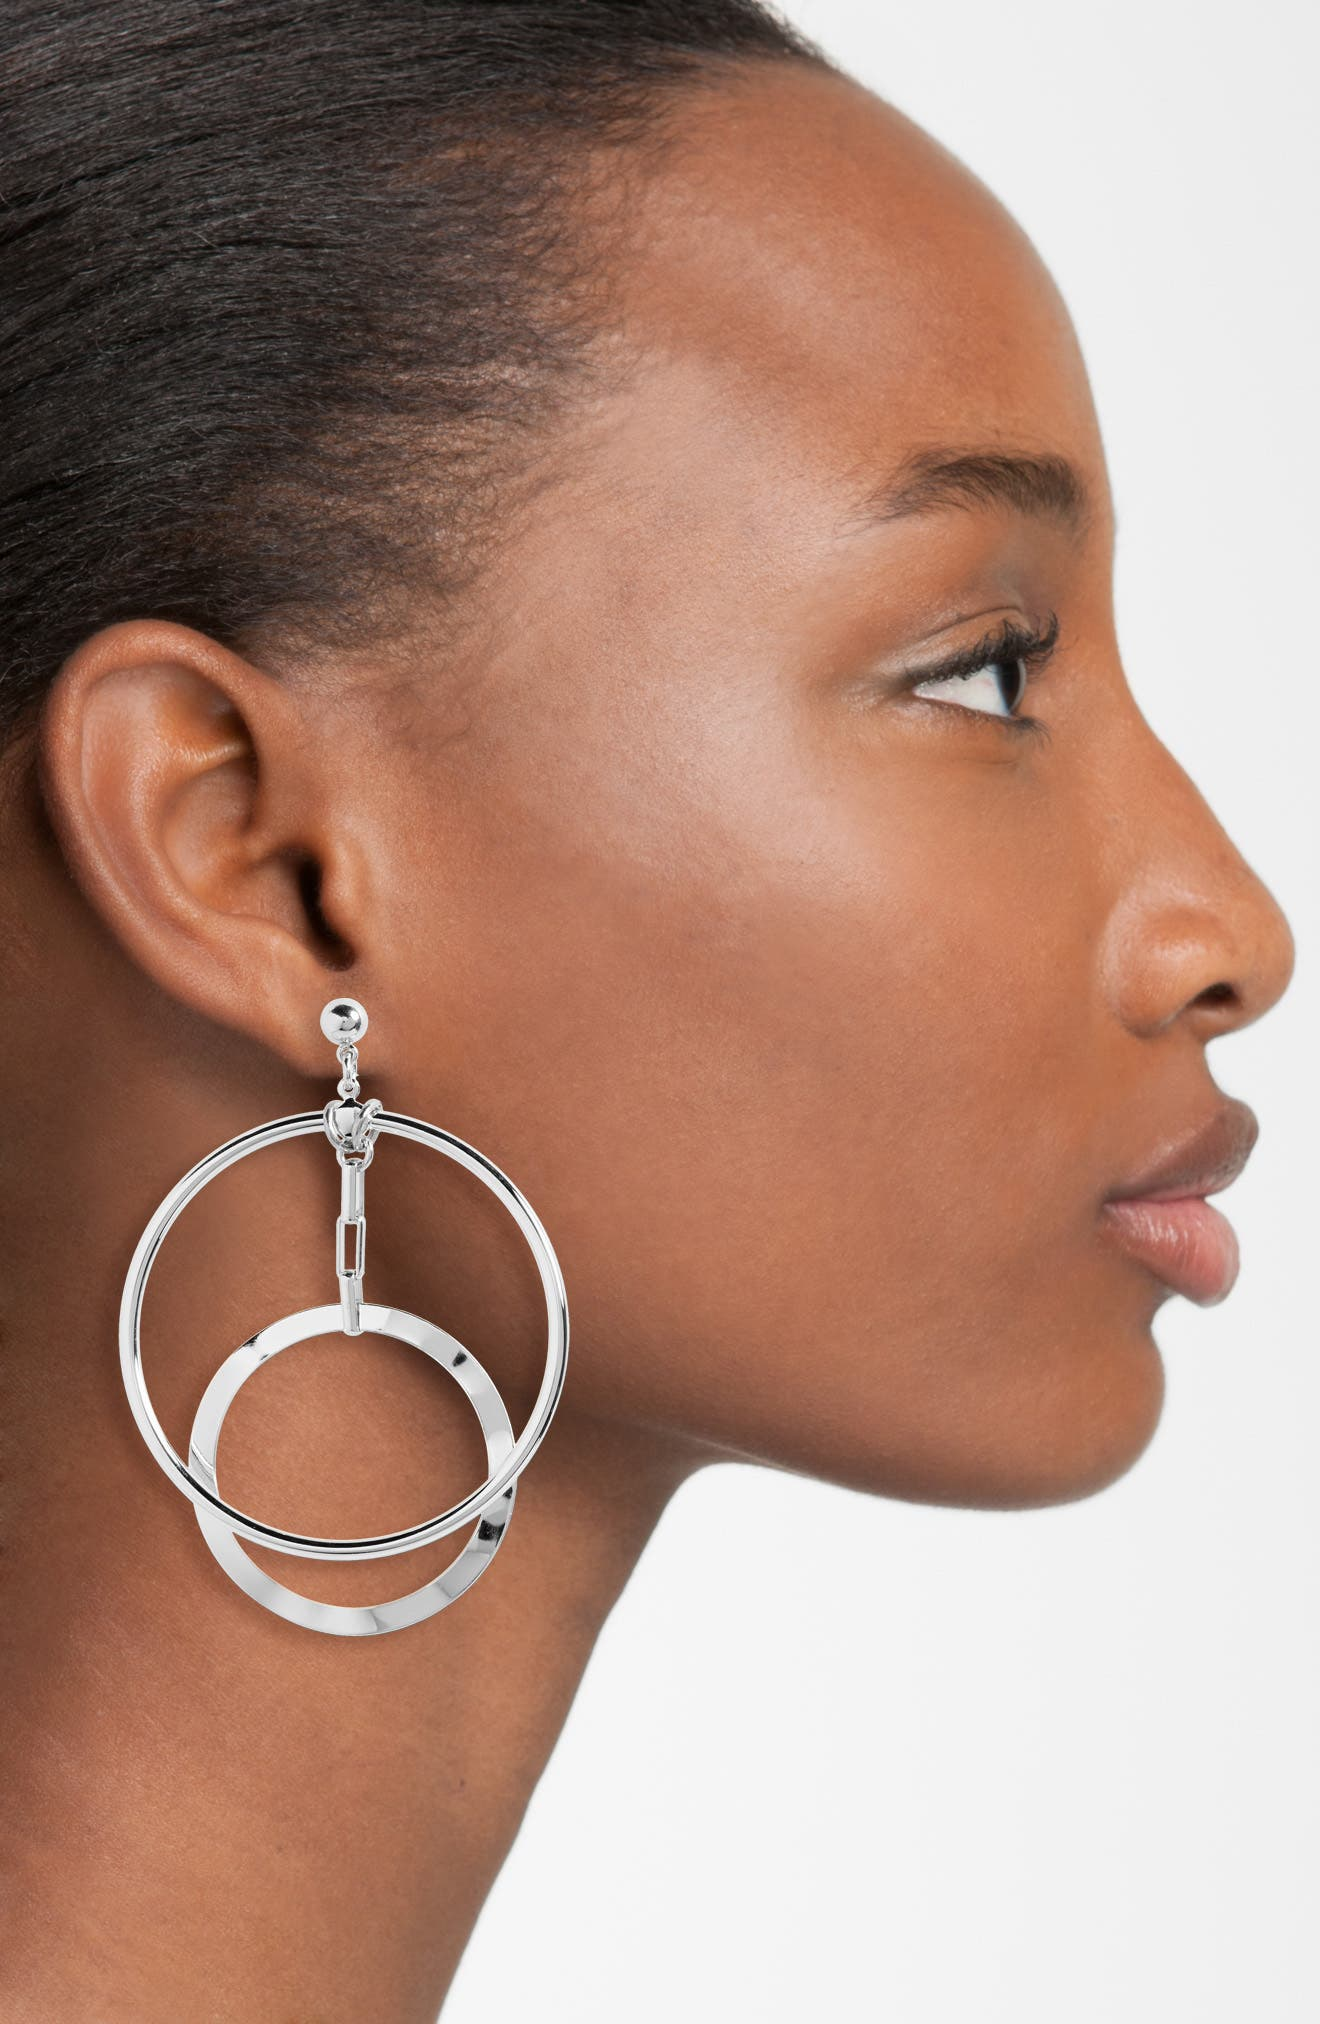 Eclipse Hoop Earrings,                             Alternate thumbnail 2, color,                             SILVER